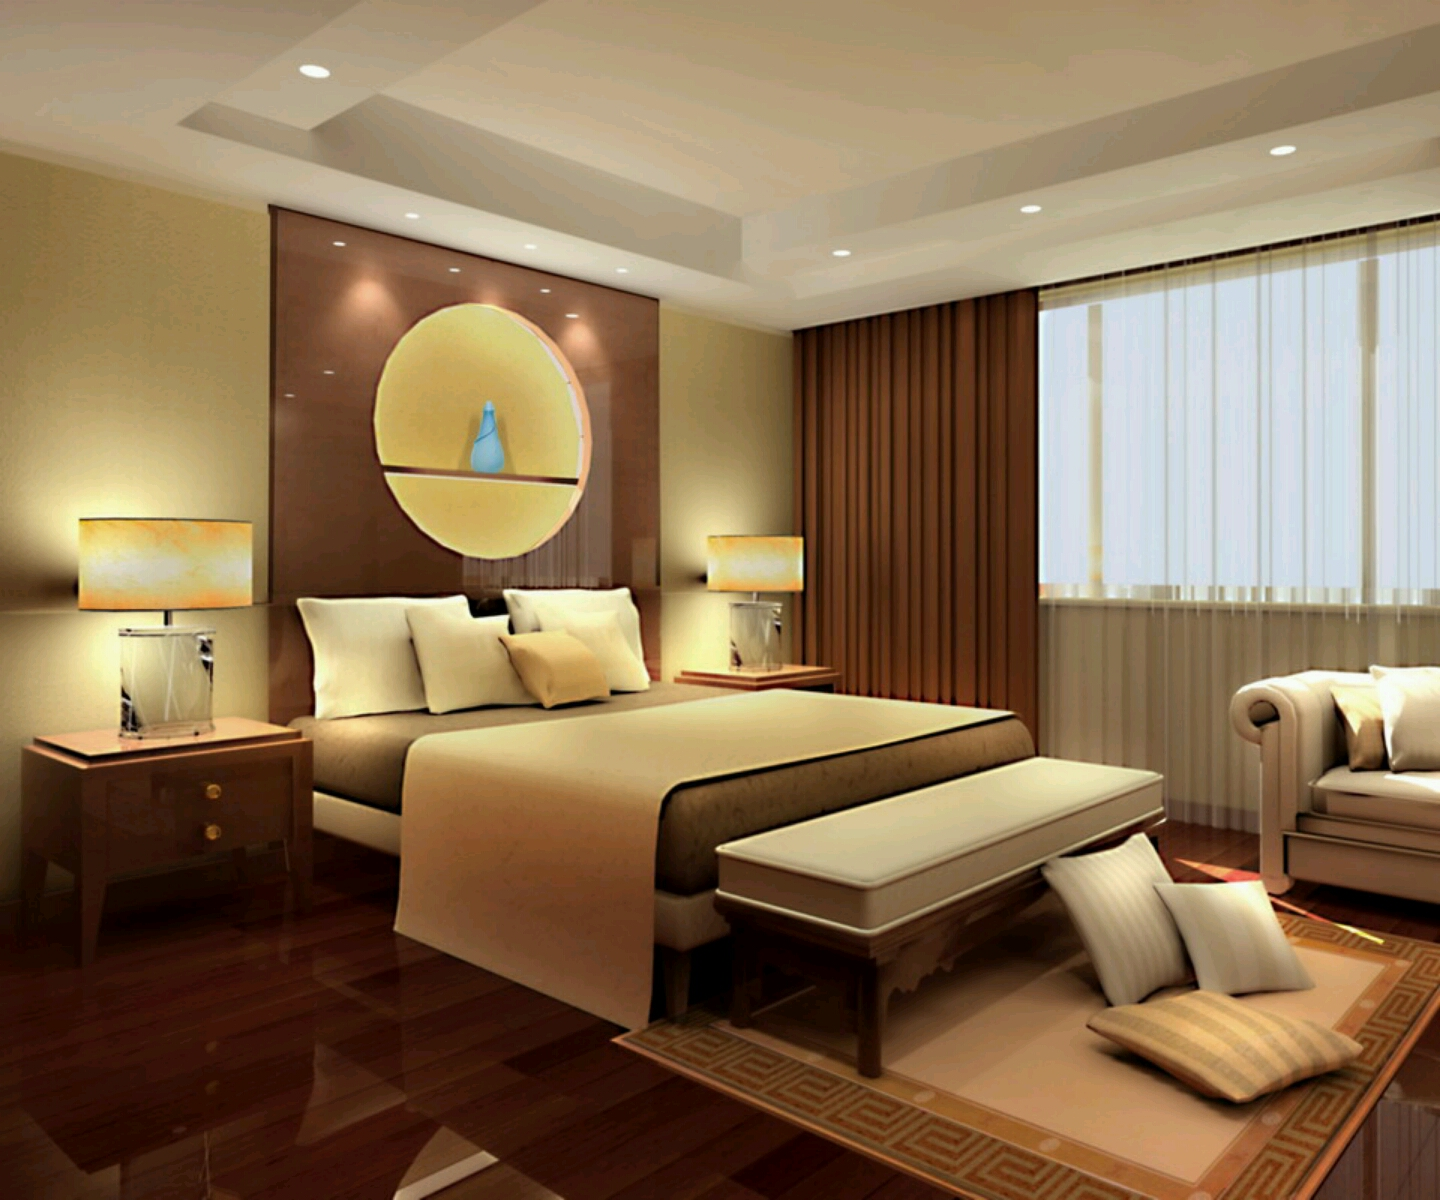 New home designs latest modern beautiful bedrooms for Stunning bedroom designs